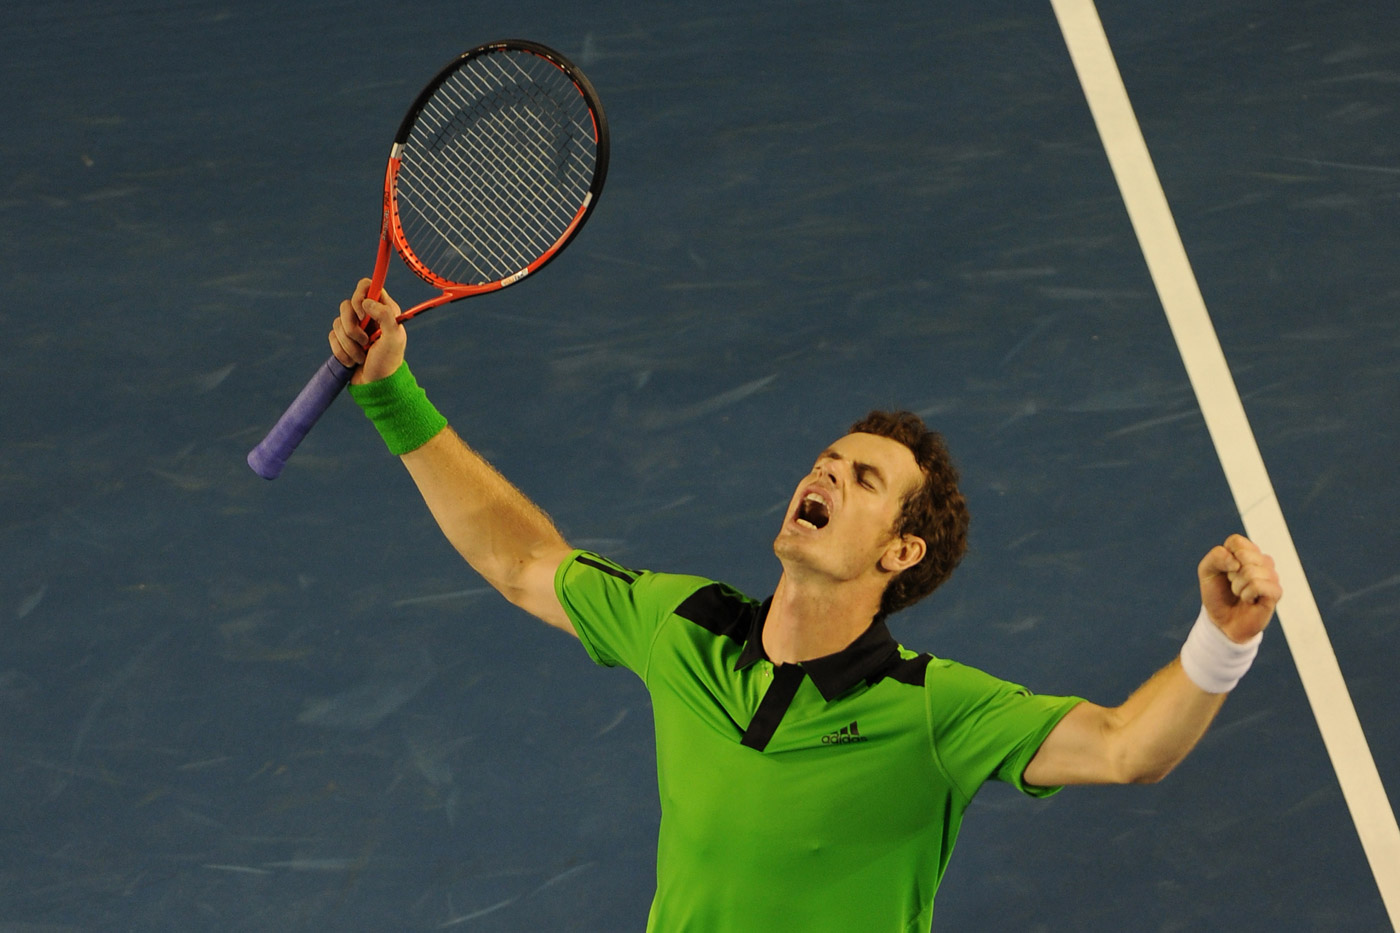 Murray Australian Open Desktop Wallpaper Screensaver Background Tennis 1400x933